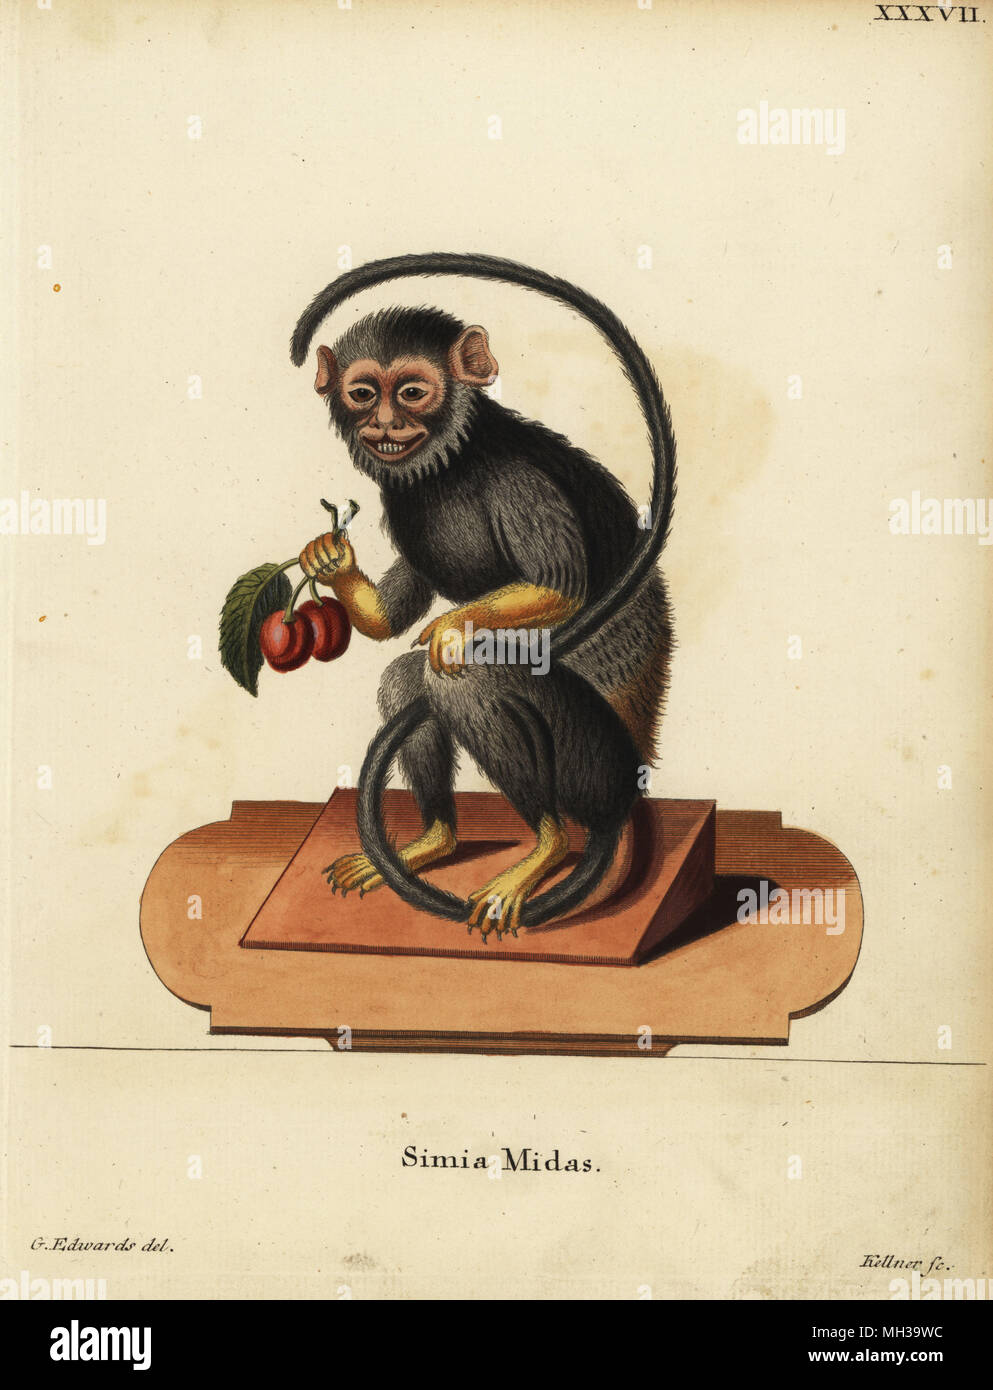 Red-handed or golden-handed tamarin, Saguinus midas. Simia midas. Handcoloured copperplate engraving by Joseph Kellner after an illustration by George Edwards from Johann Christian Daniel Schreber's Animal Illustrations after Nature, or Schreber's Fantastic Animals, Erlangen, Germany, 1775. - Stock Image